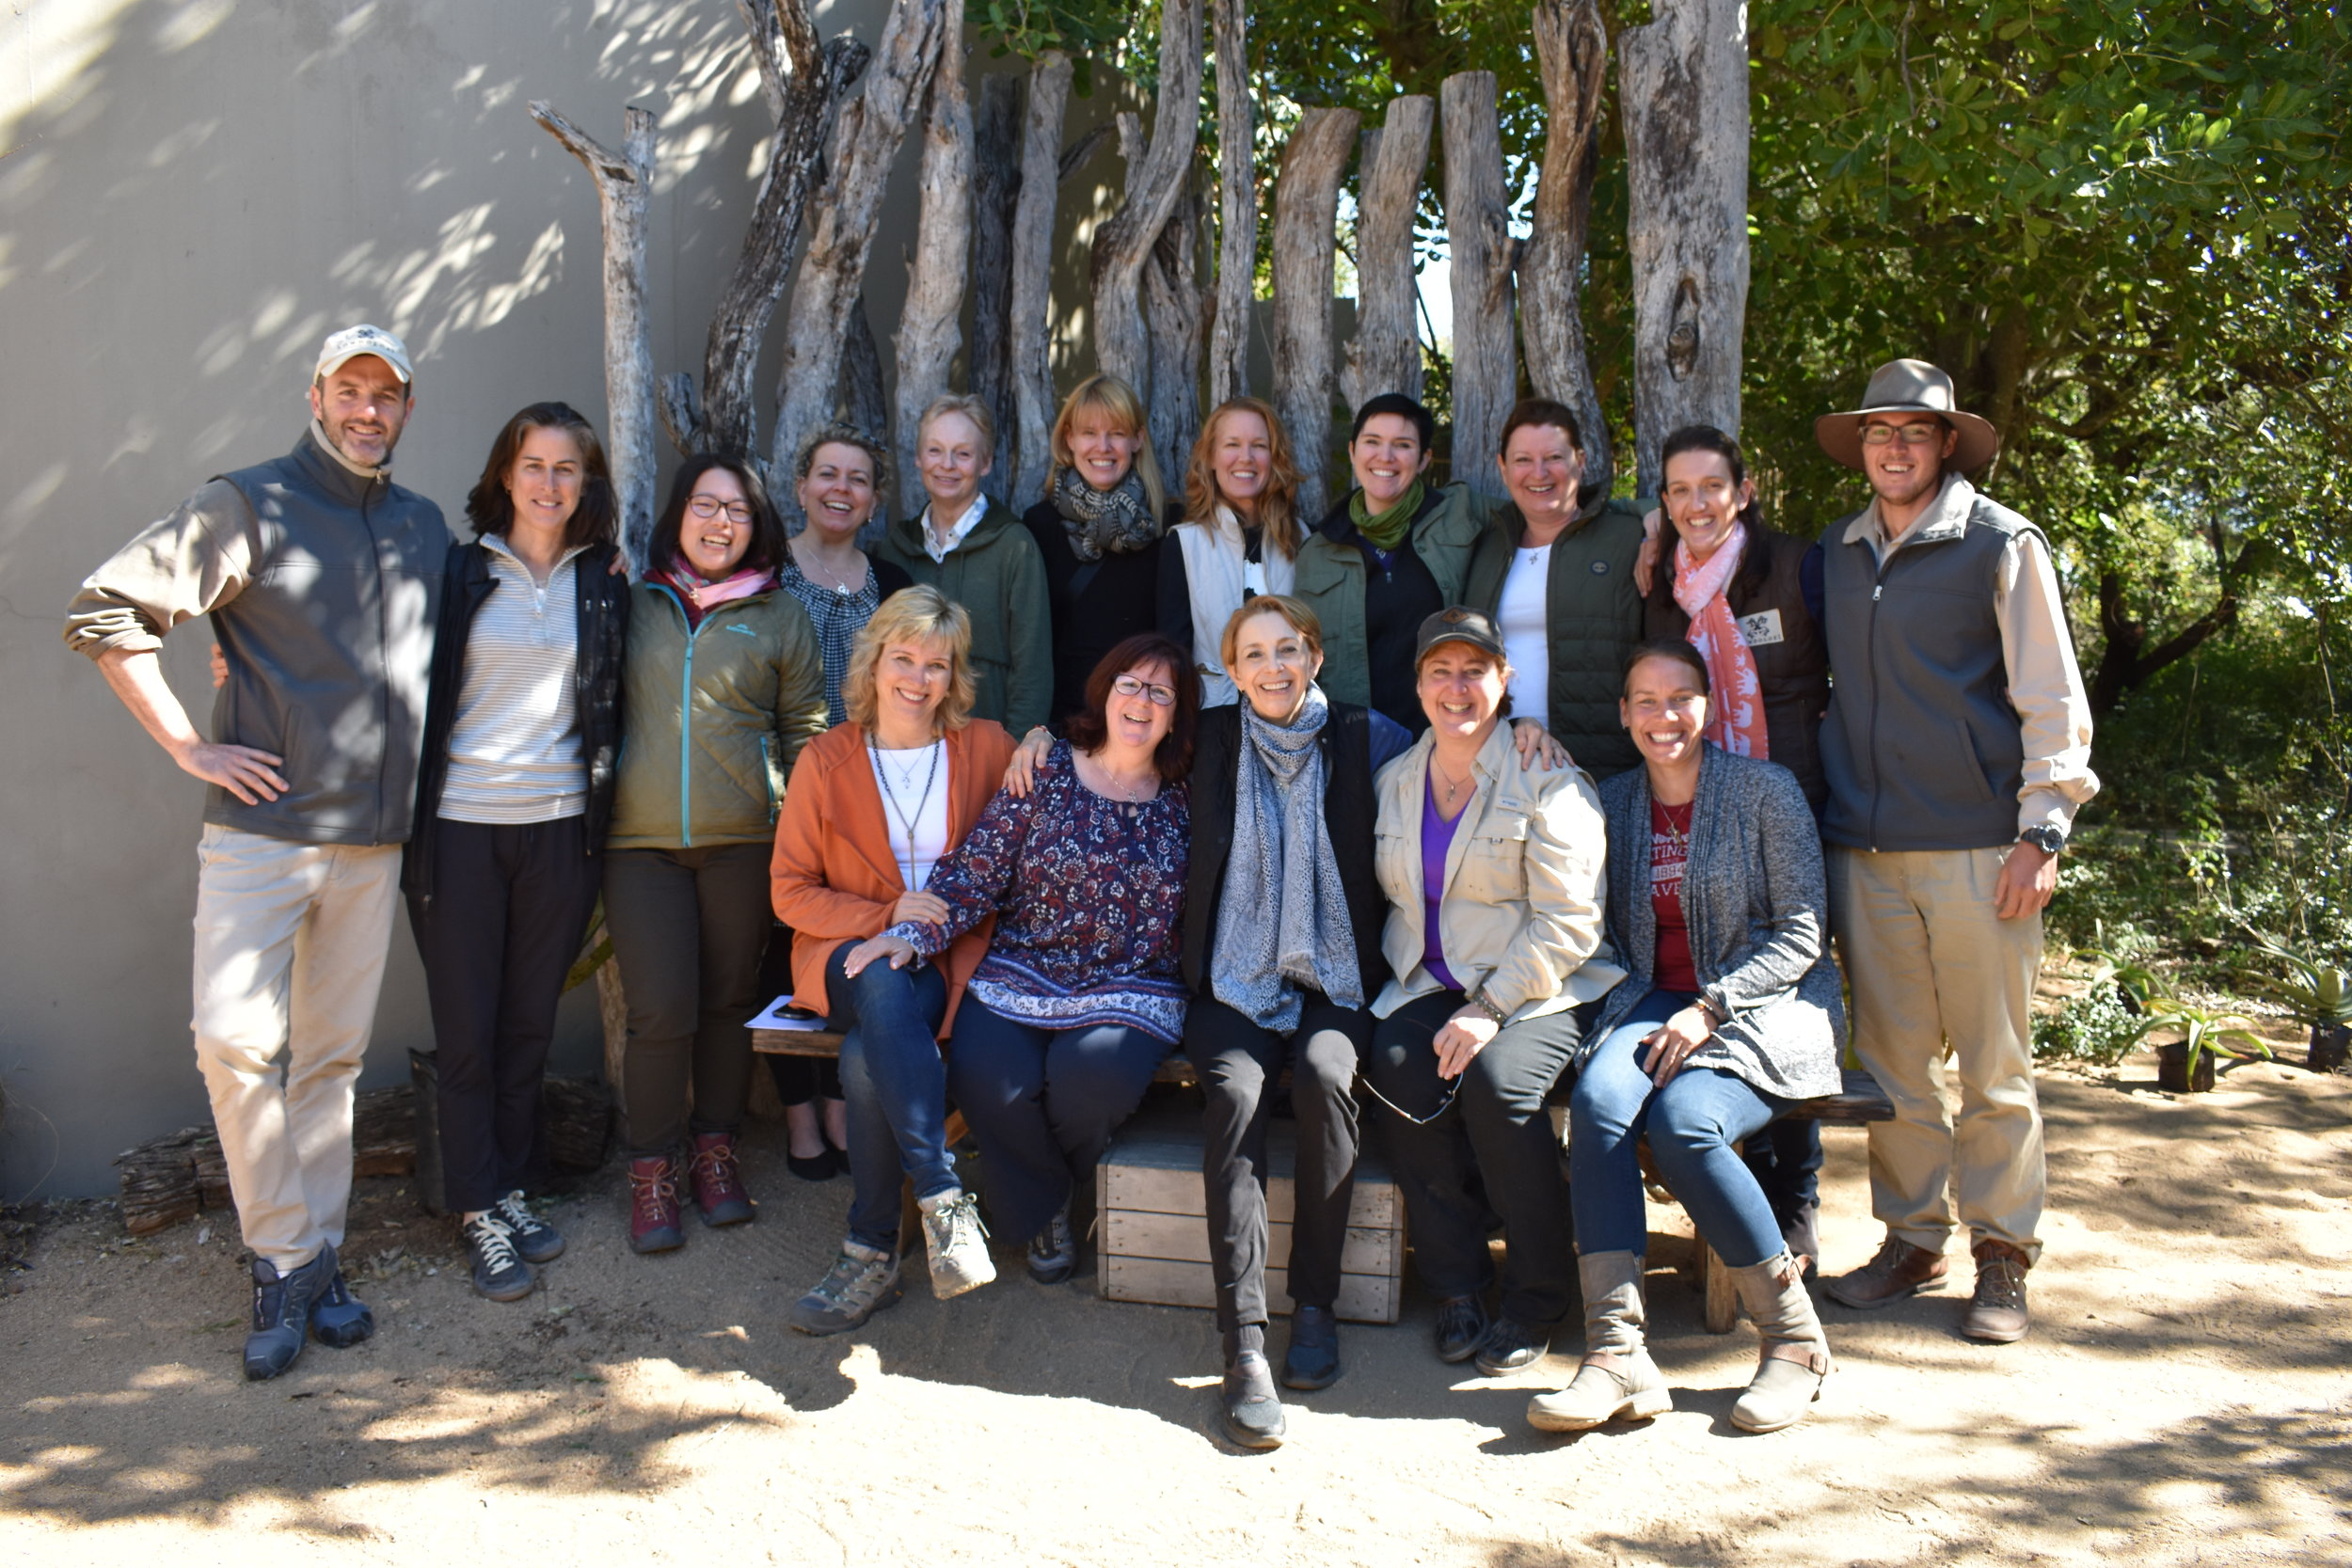 - Londolozi, South Africa 2018 - Commitment to Self-Healing with Martha Beck & Co.